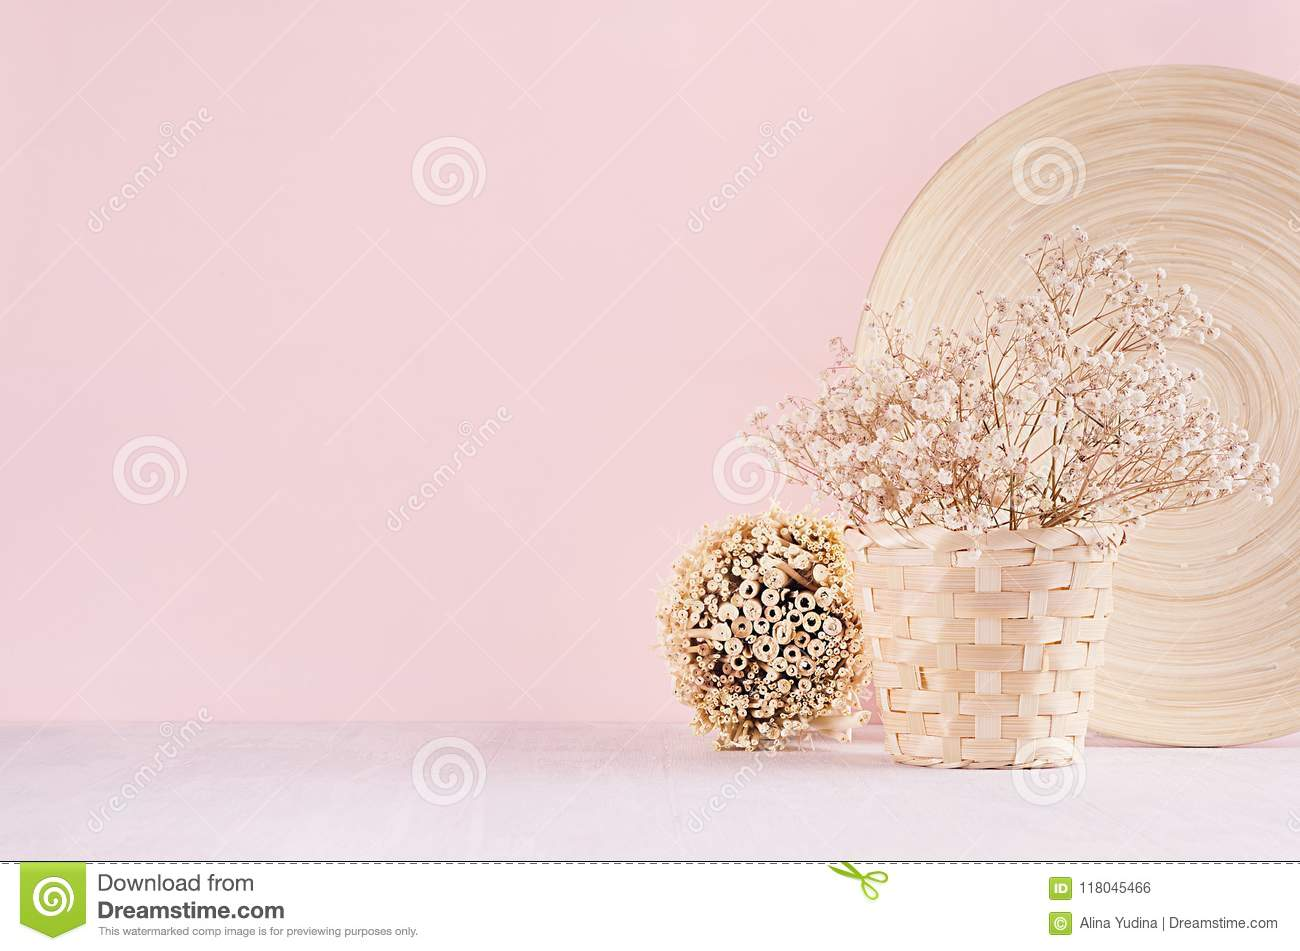 Elegance home eco decor - white dried flowers bouquet in basket with decorative plate, bunch sticks on fashion pink background.